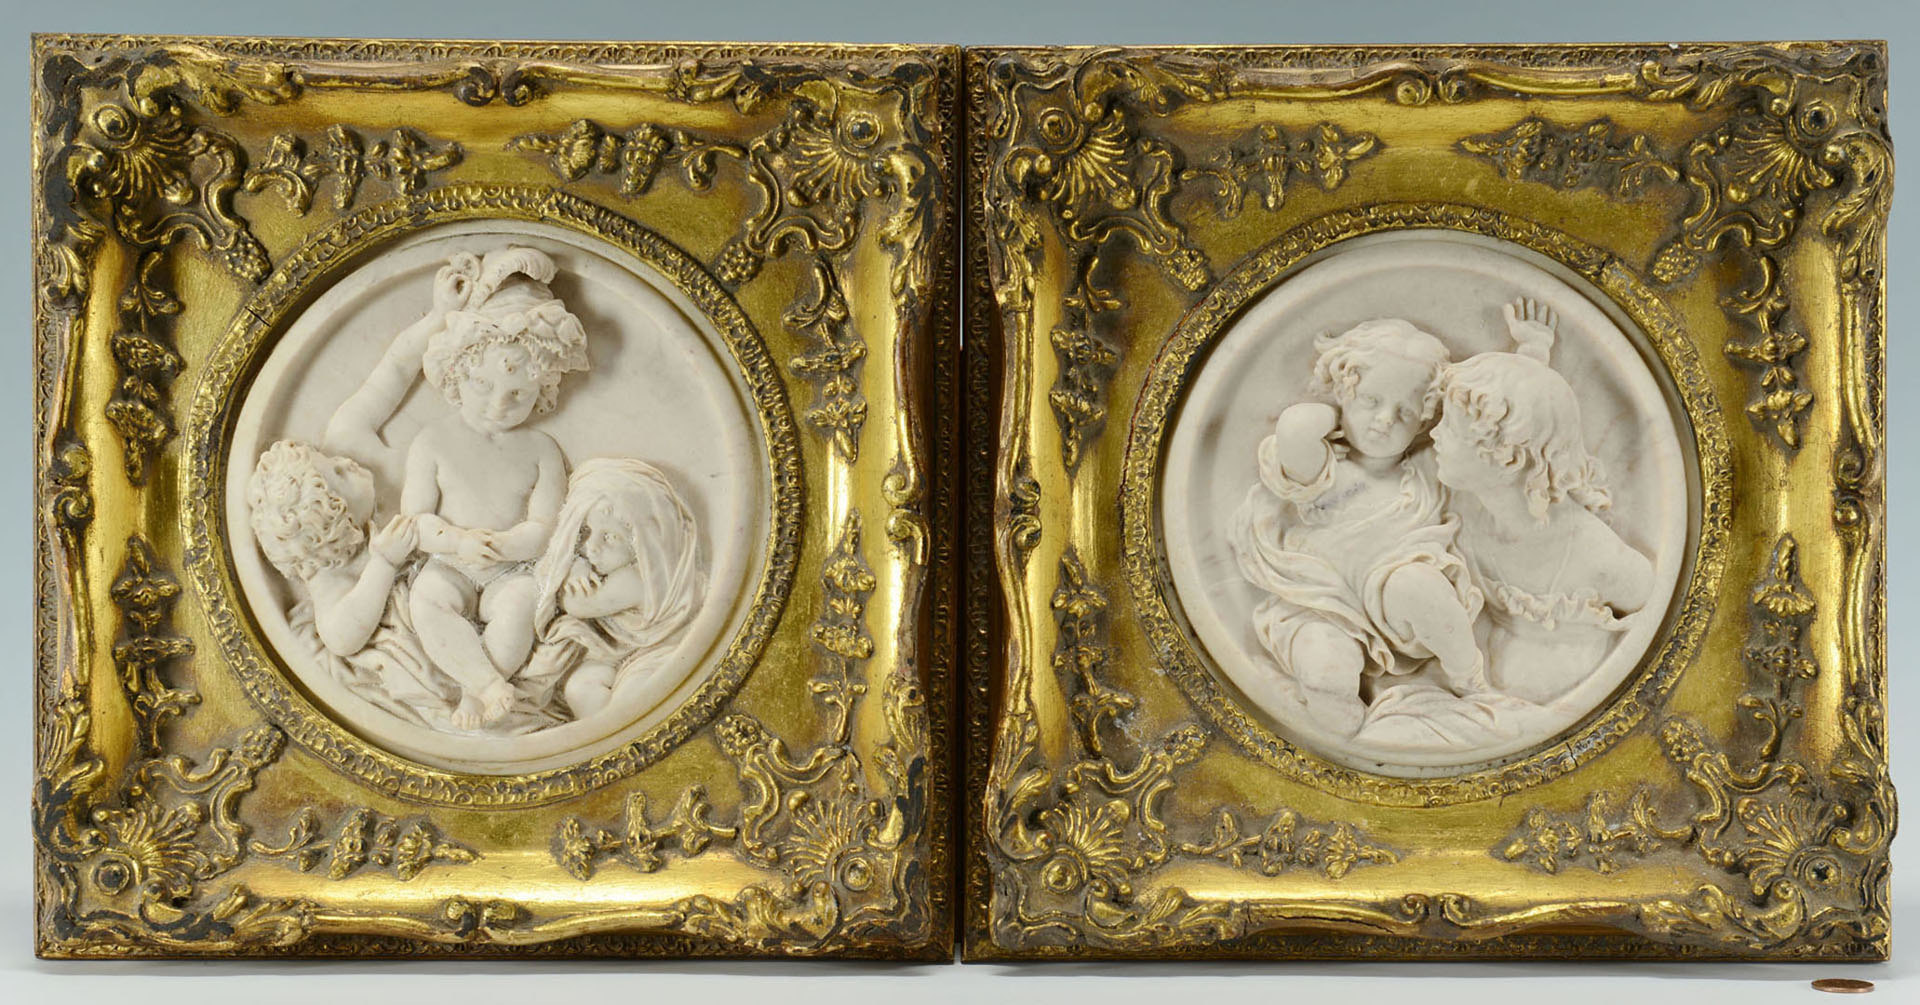 Lot 166: Pair of E. W. Wyon marble plaques of children